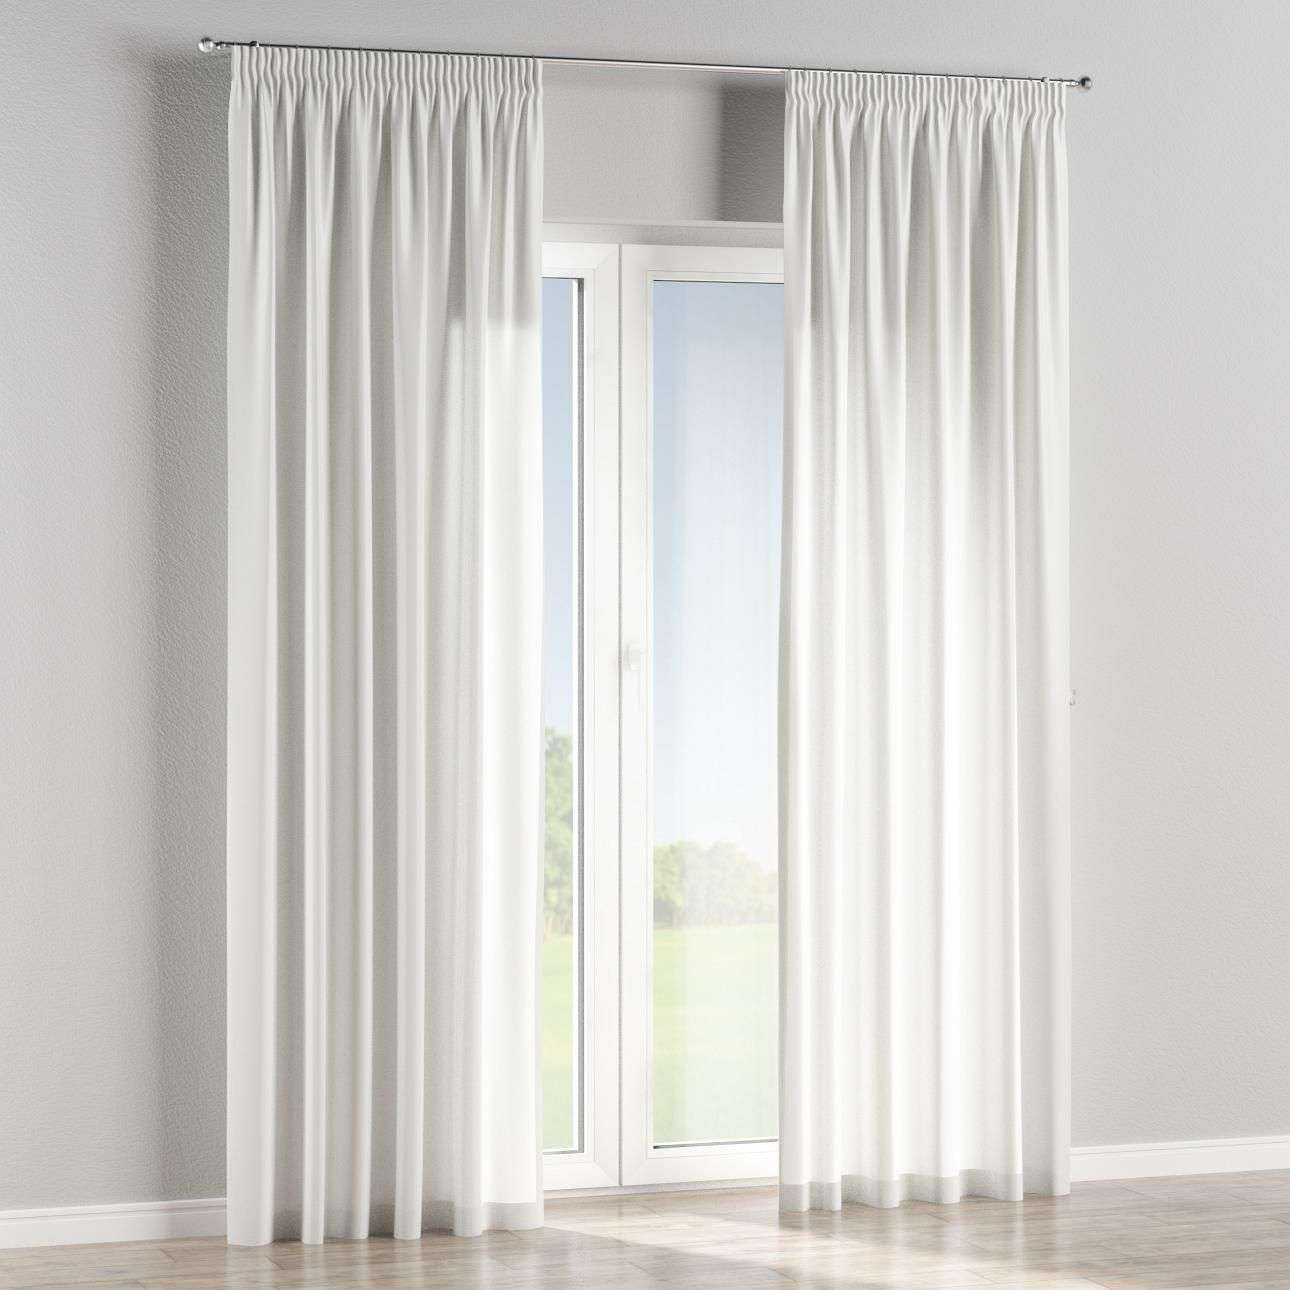 Pencil pleat lined curtains in collection Cardiff, fabric: 136-24